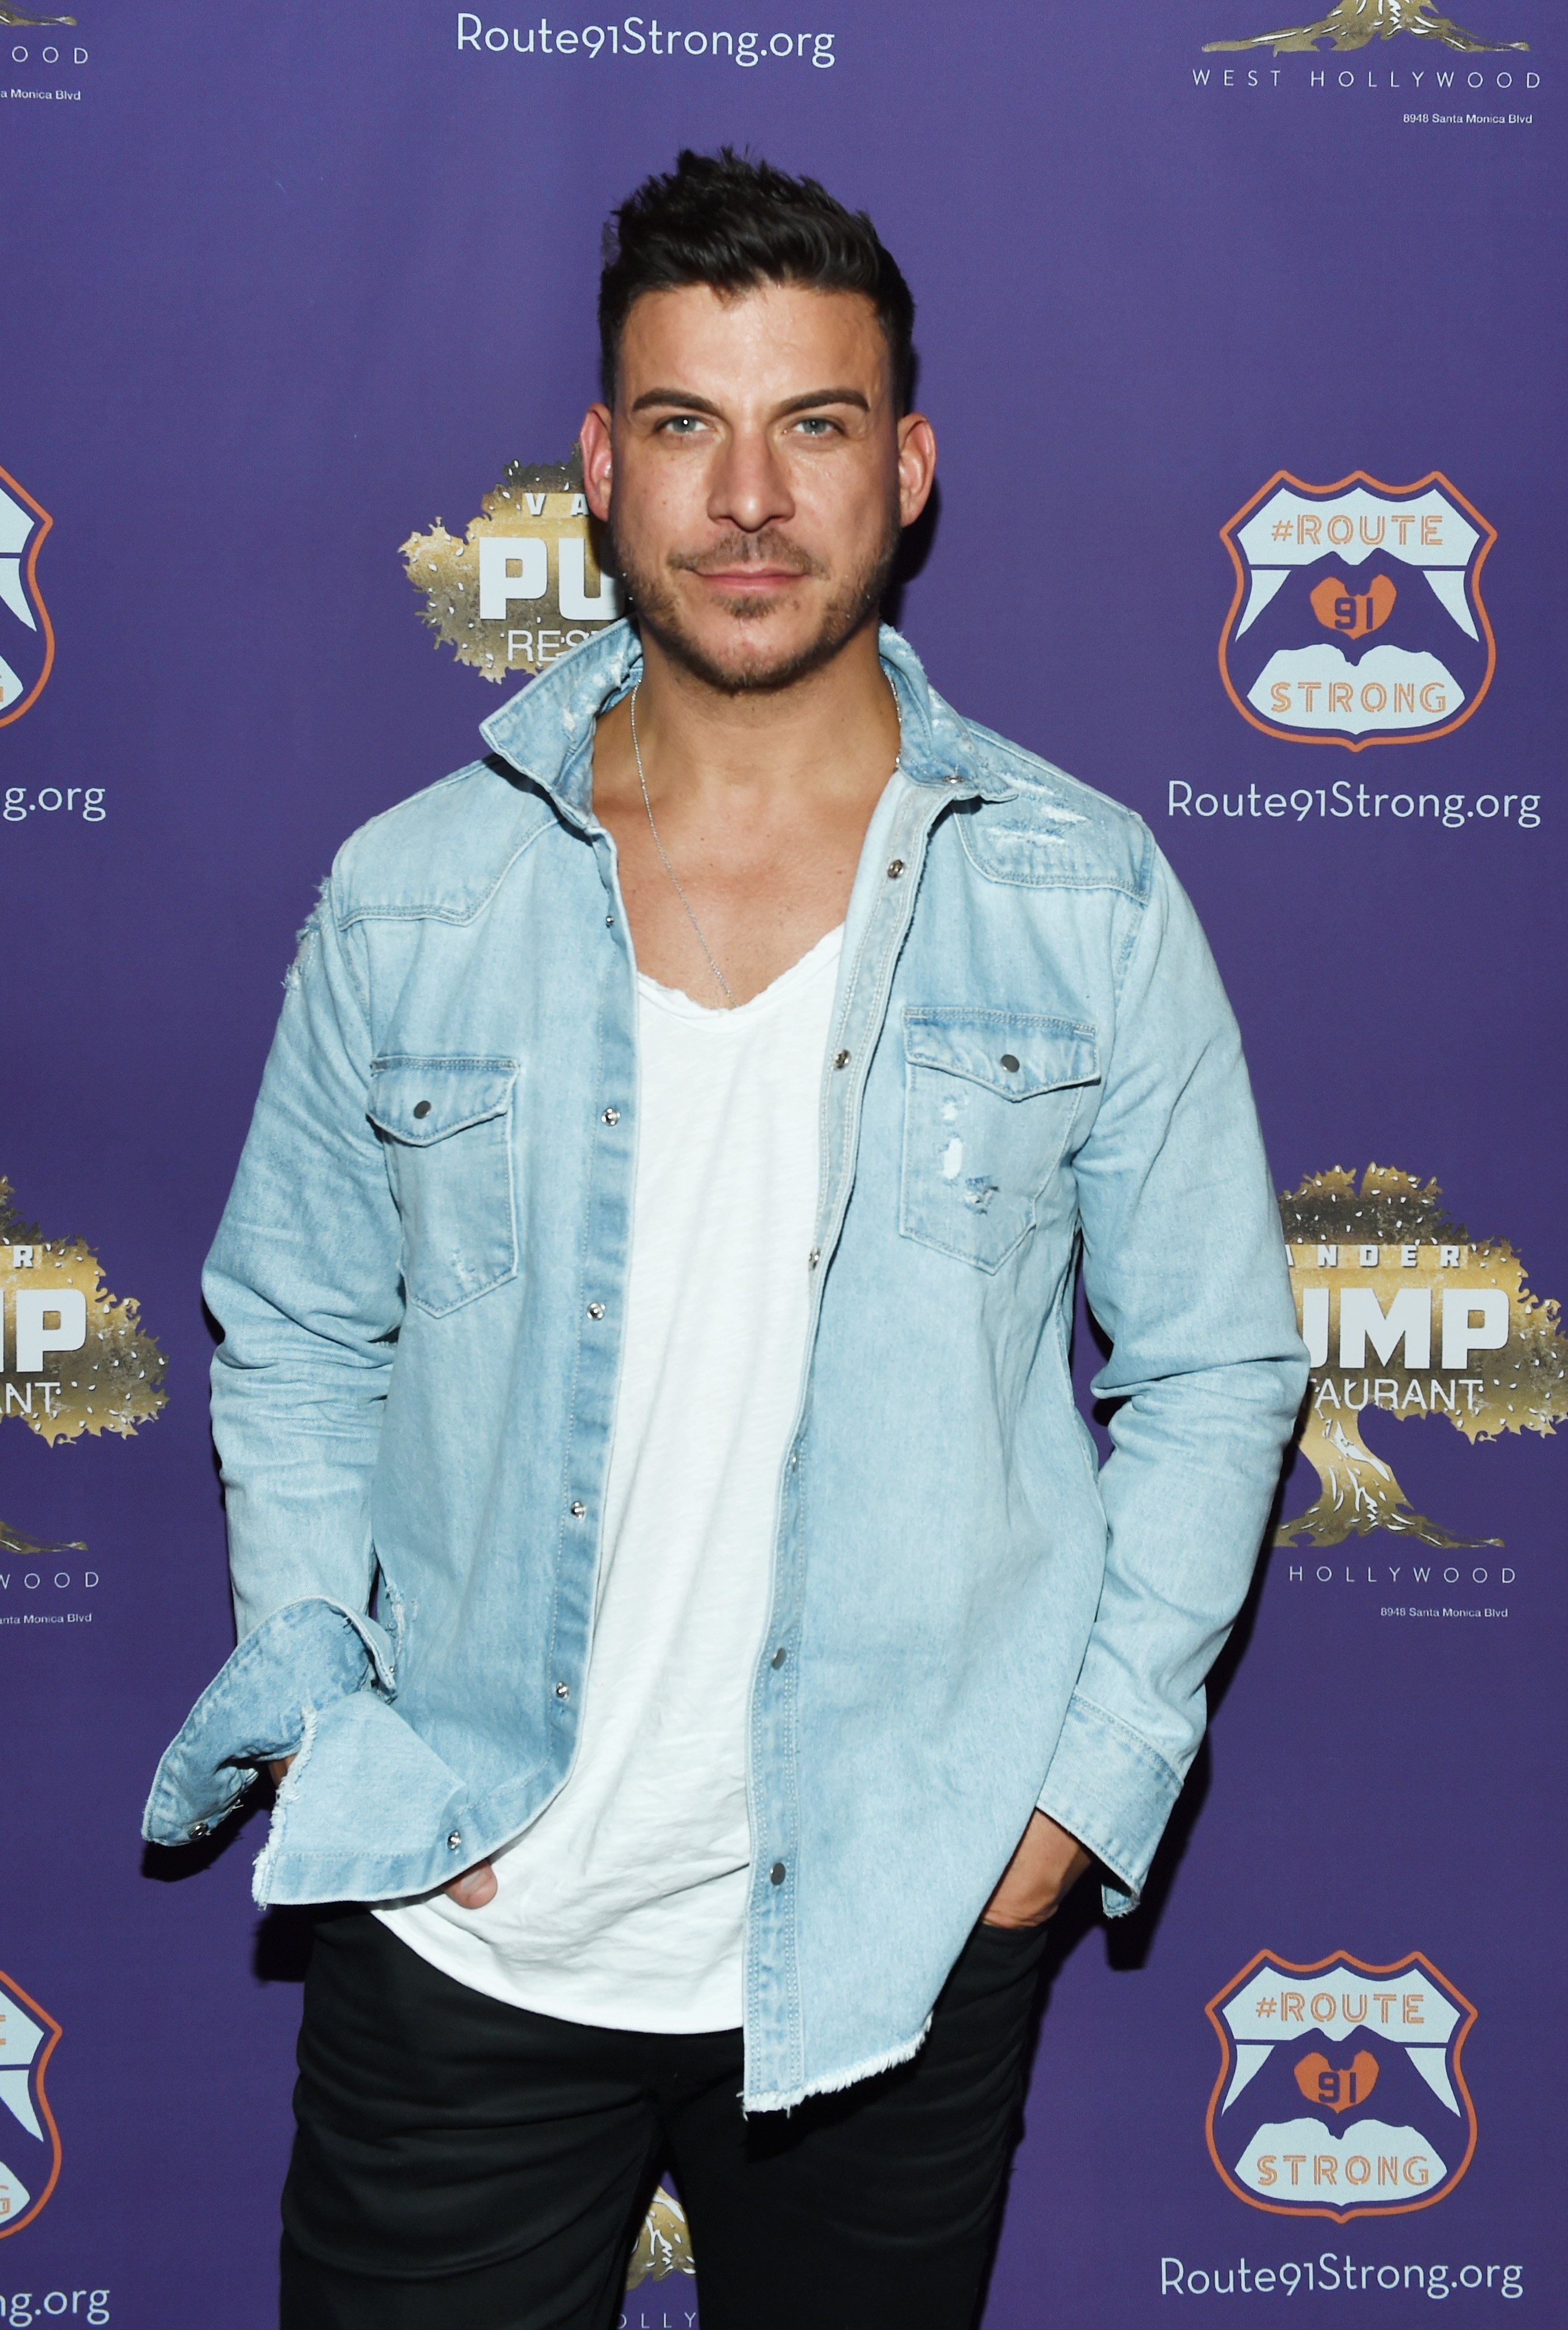 Jax Taylor attends the 1st annniversary fundraiser for the victims of the October 1st, 2017 Las Vegas Shooting on October 1, 2018 in West Hollywood, California | Photo: Getty Images